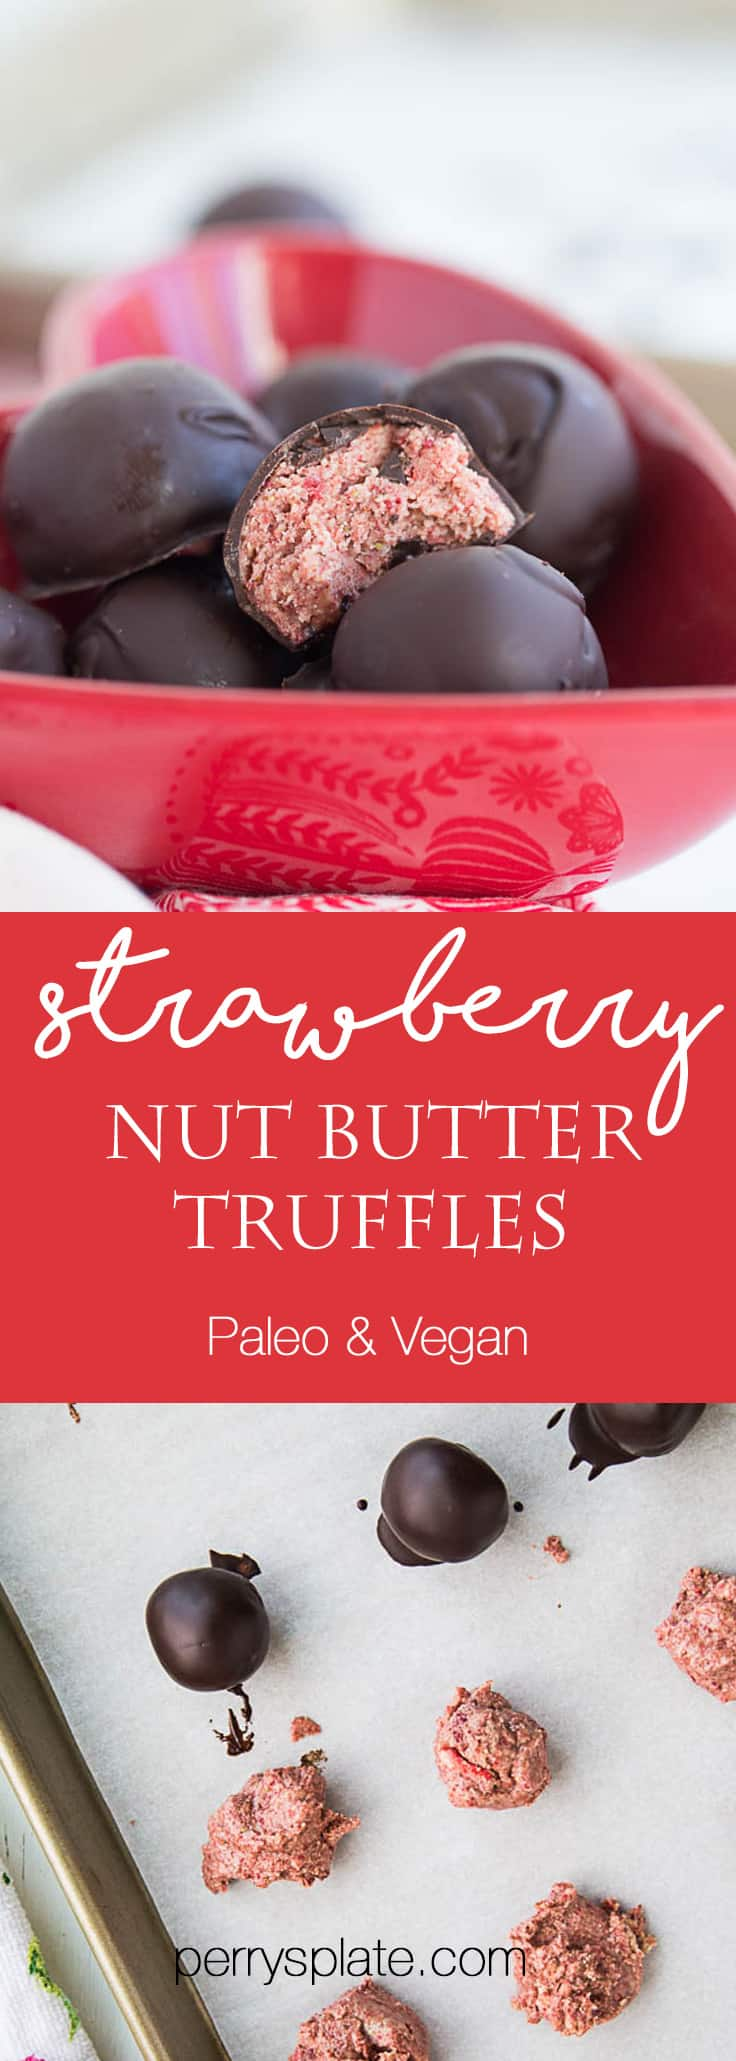 Strawberry Nut Butter Truffles | paleo recipes | paleo dessert | nut butter recipes | Valentine's Day treats | perrysplate.com